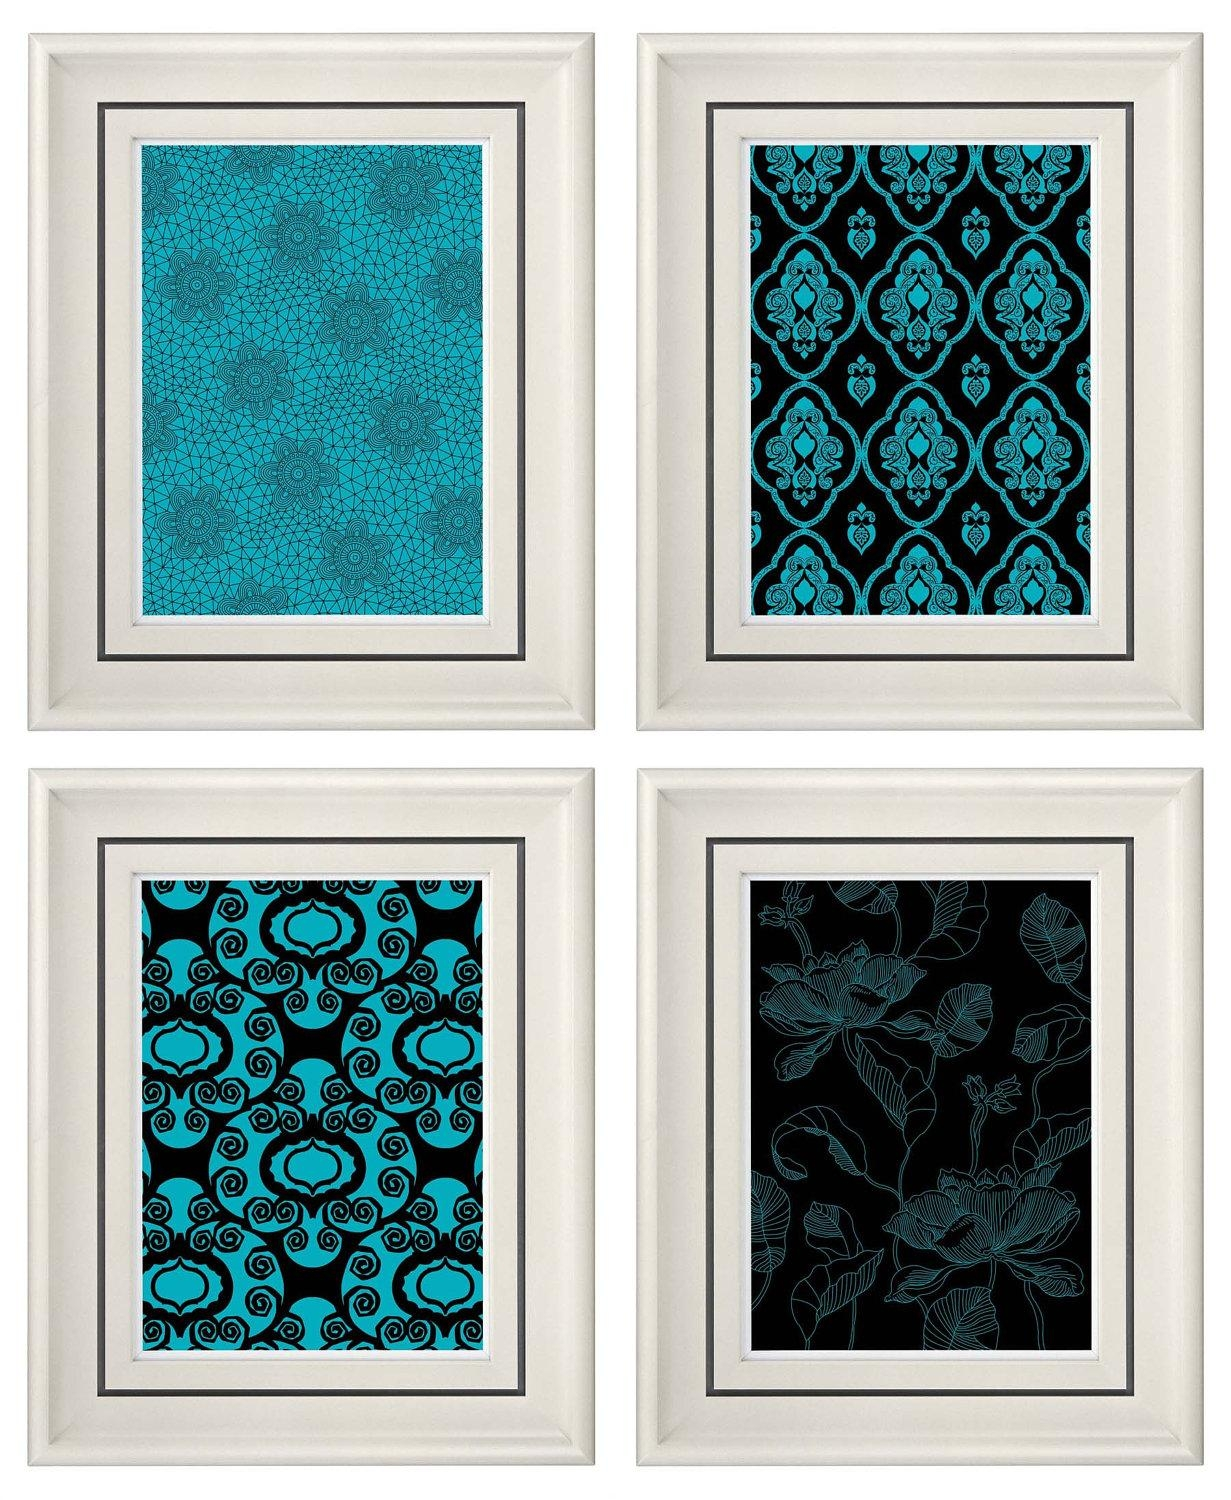 Wall Decor Turquoise – Home Design Throughout Black And Teal Wall Art (View 2 of 20)